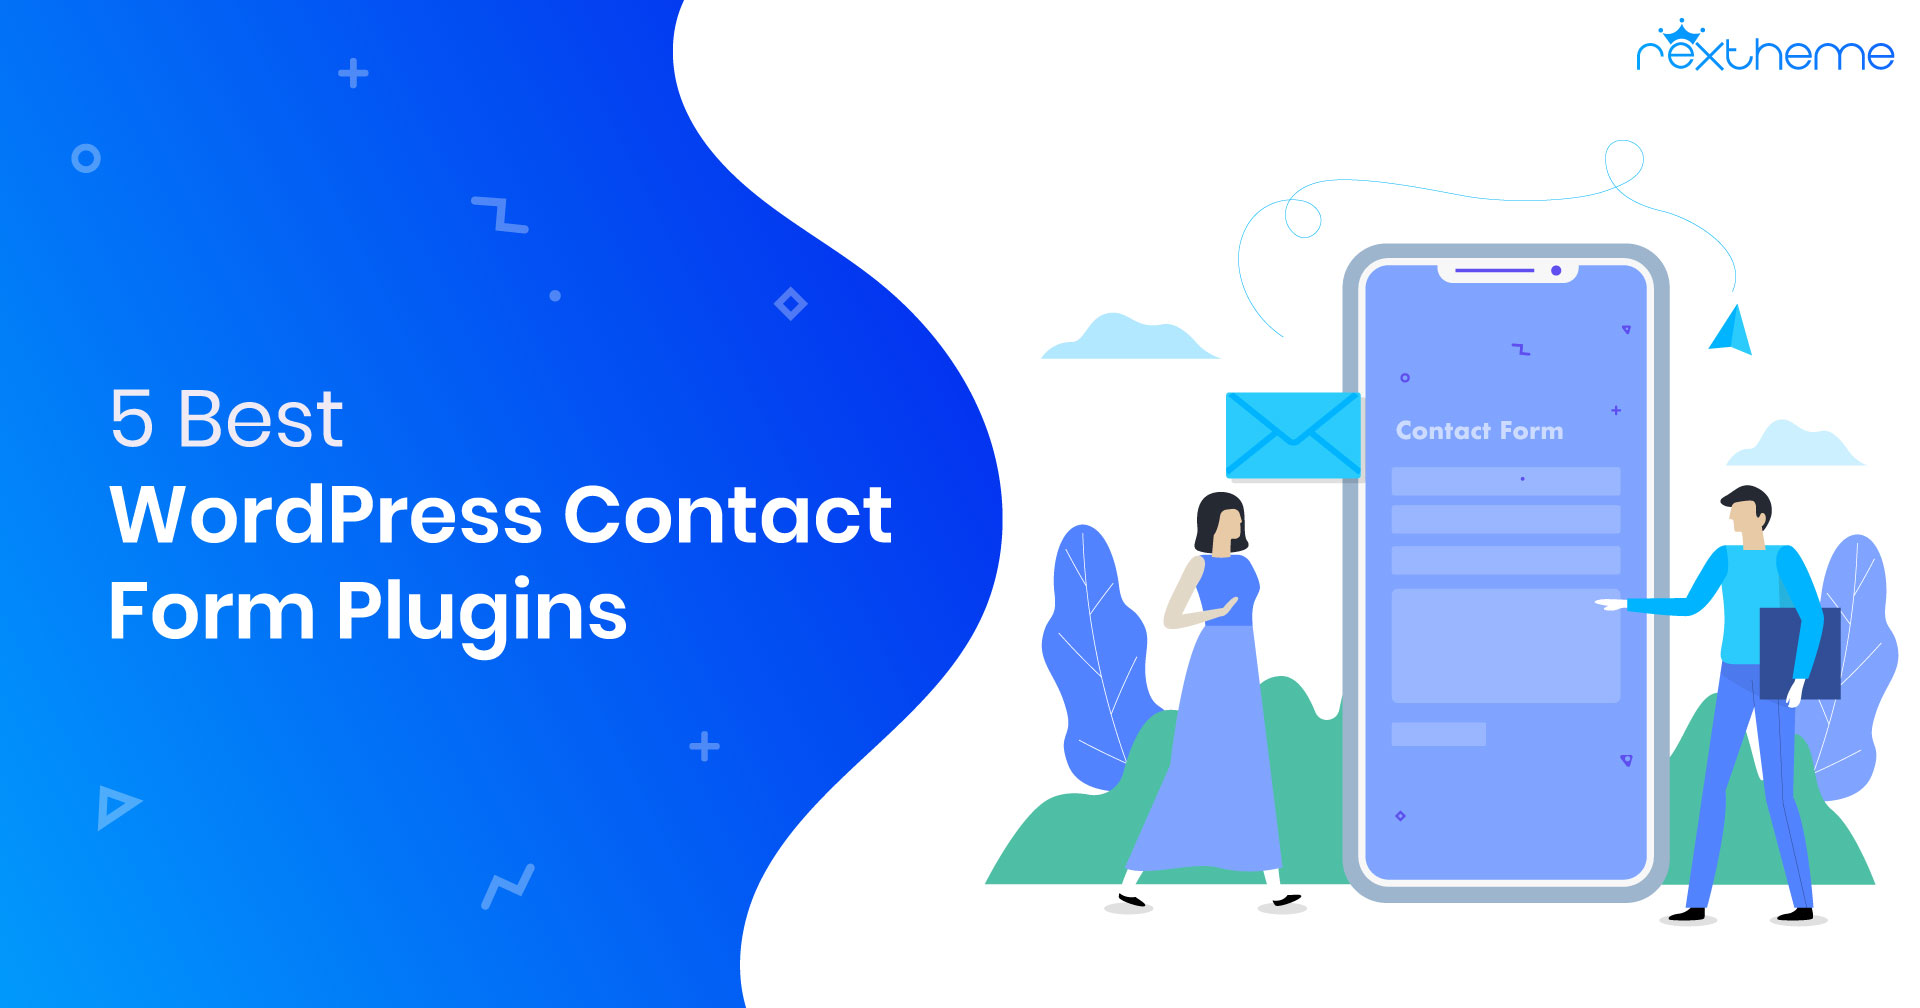 5 Best WordPress Contact Form Plugins [2020]